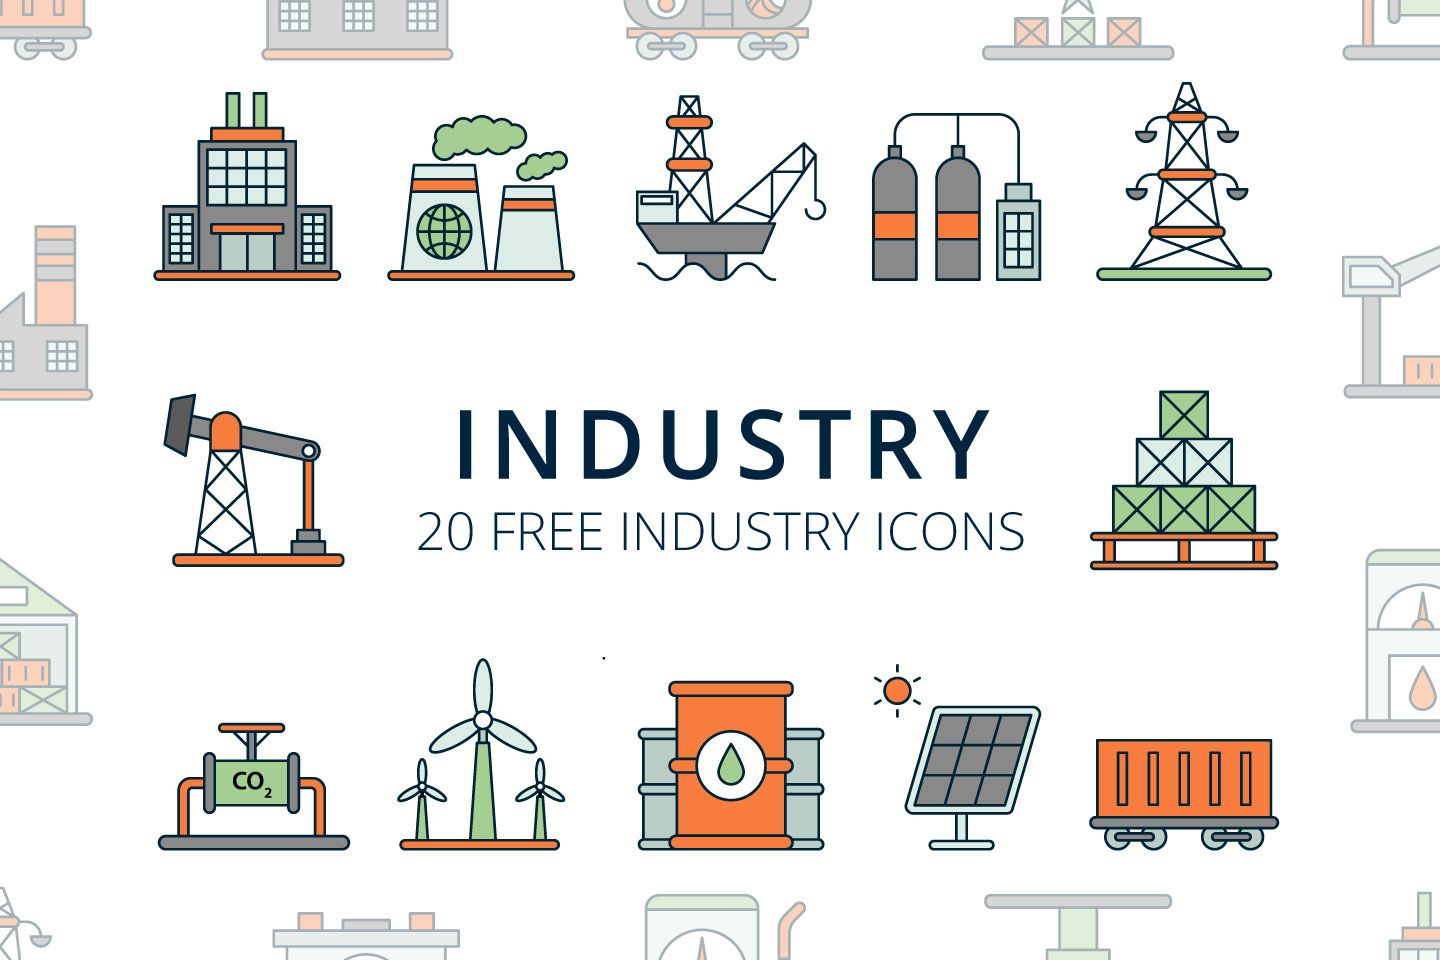 Free Industry Vector Icons Ai, SVG and PNG Icons